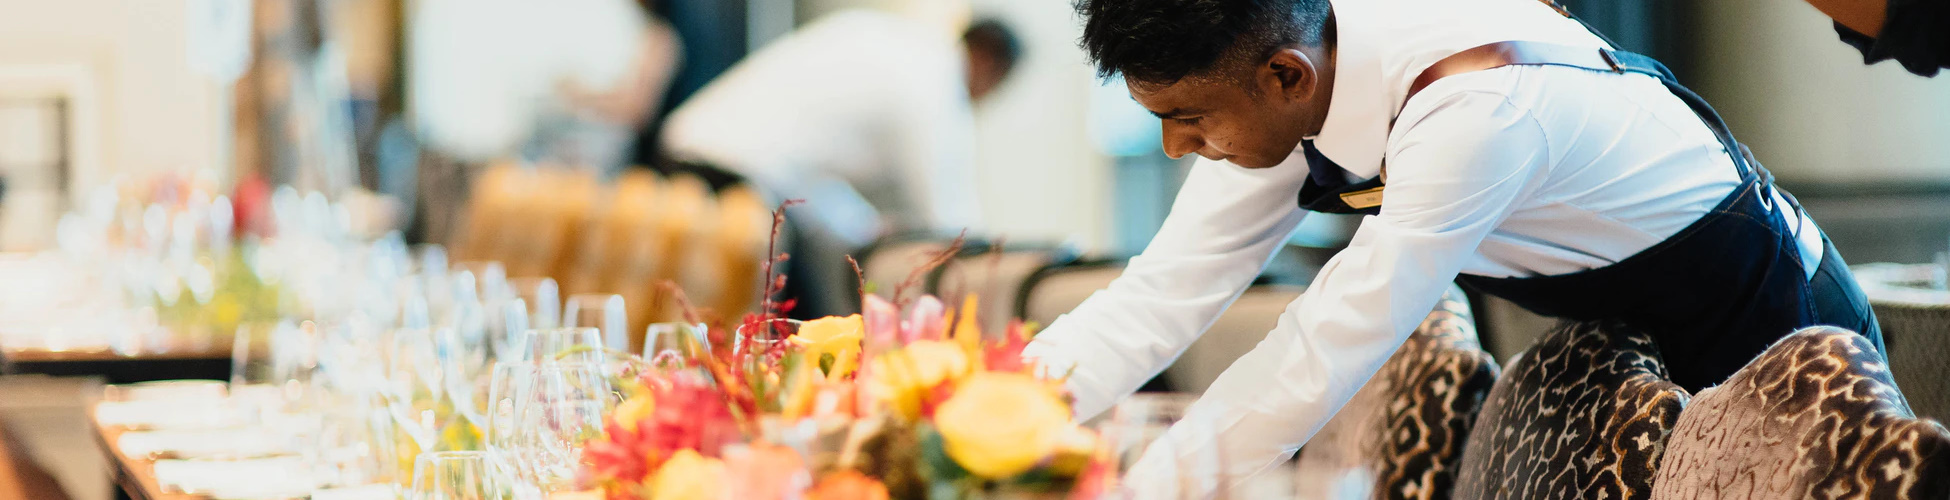 Best Catering Services in San Francisco by Caterer SF